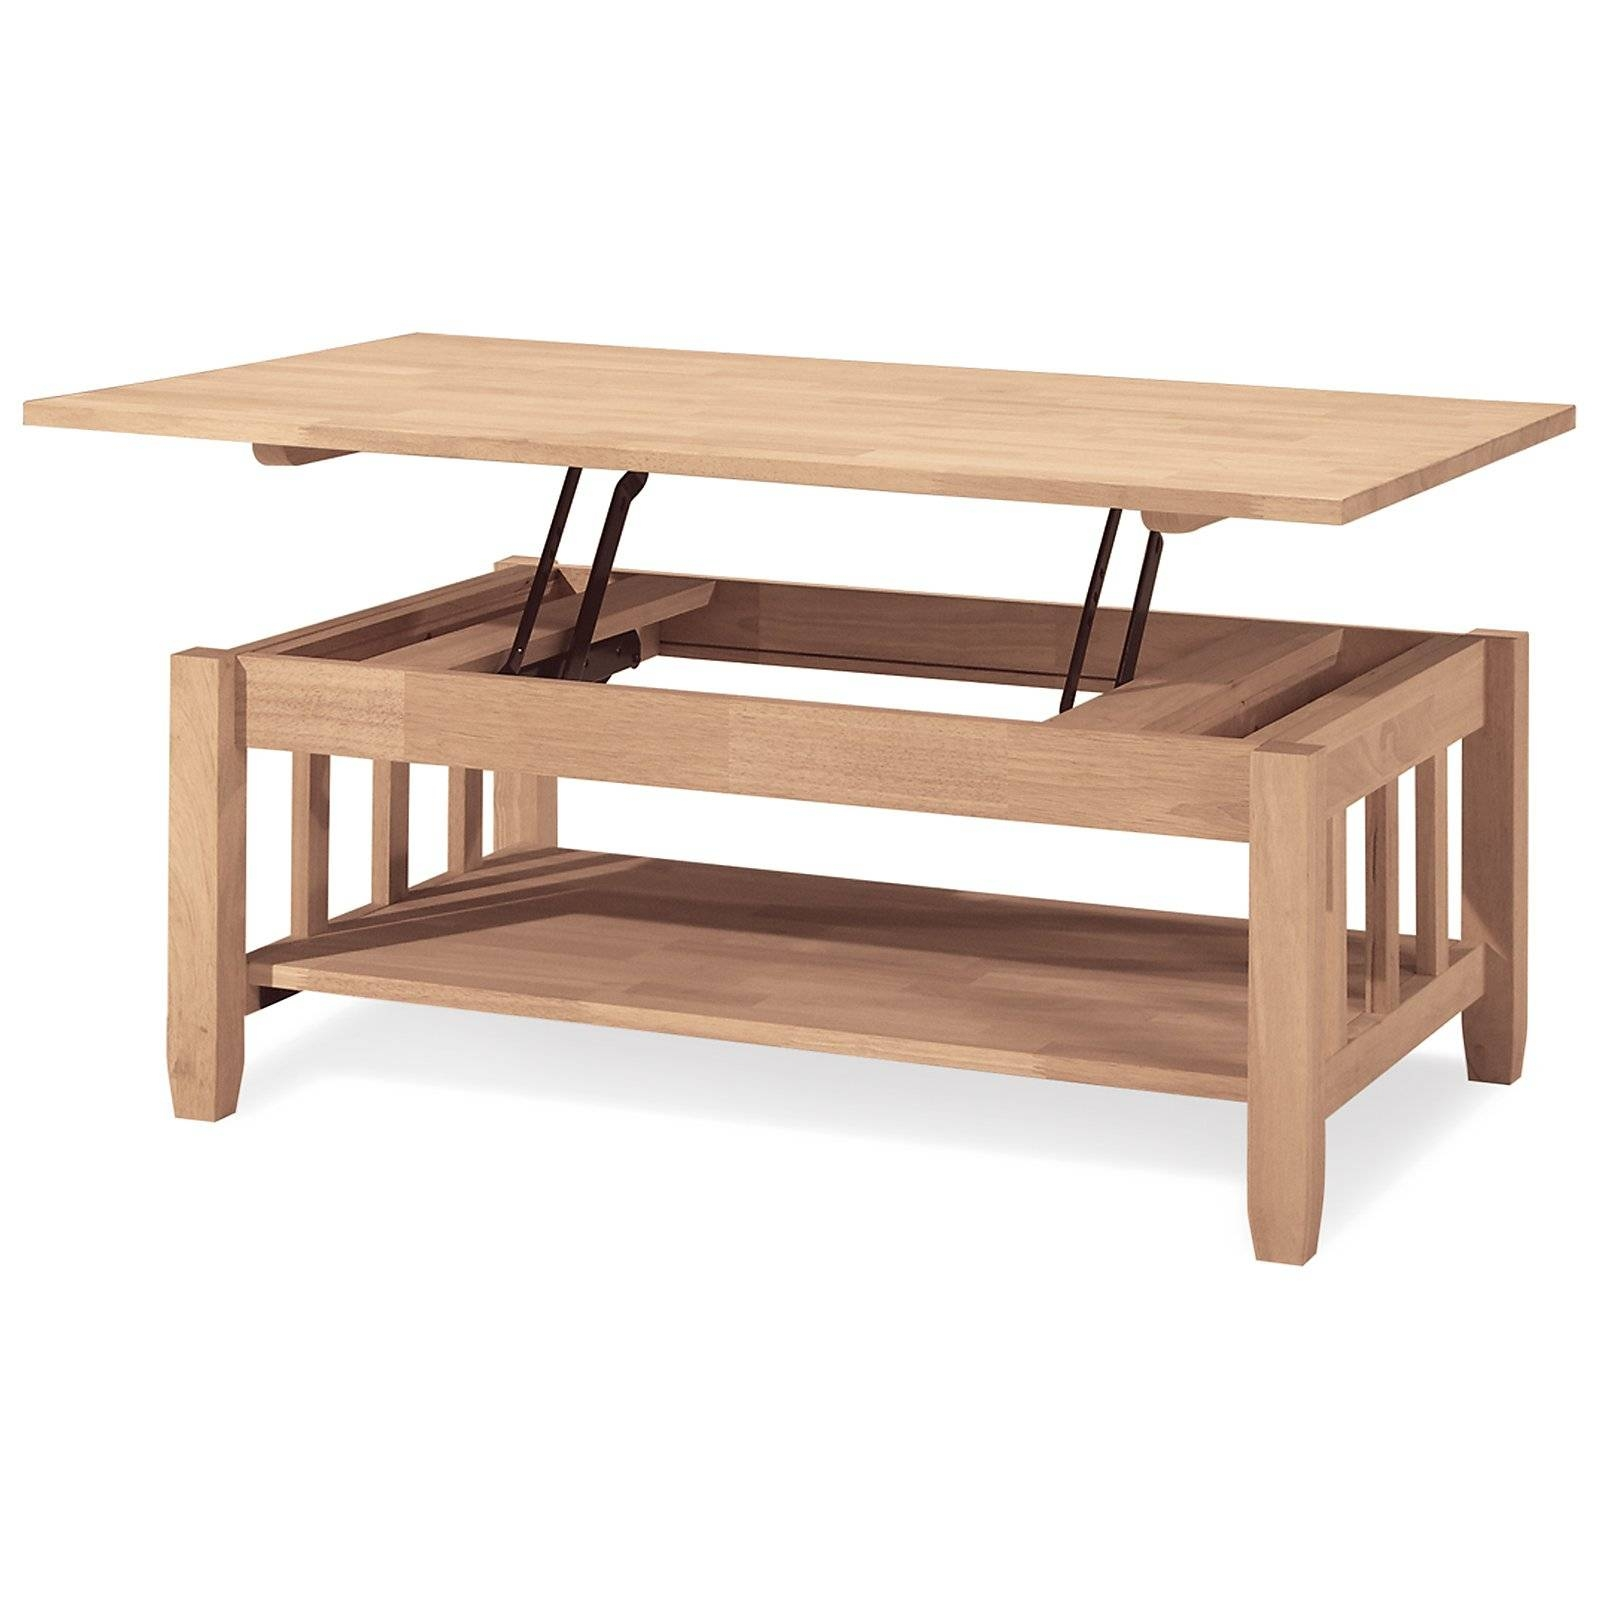 Rustic Lifting Coffee Table — Coffee Table's Zone : Making A inside Lifting Coffee Tables (Image 25 of 30)